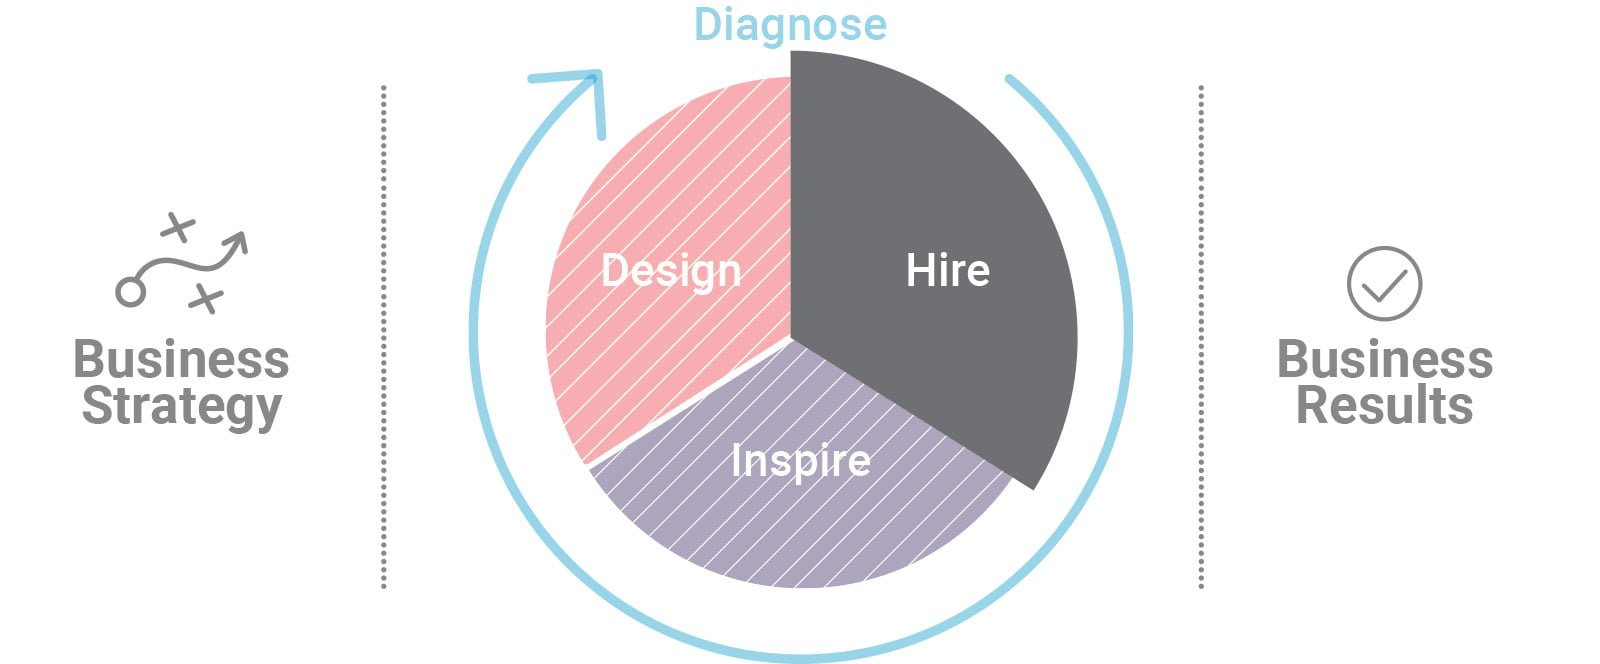 PI Midlantic Equips your Company to Hire the Best Fit for Any Role With Confidence